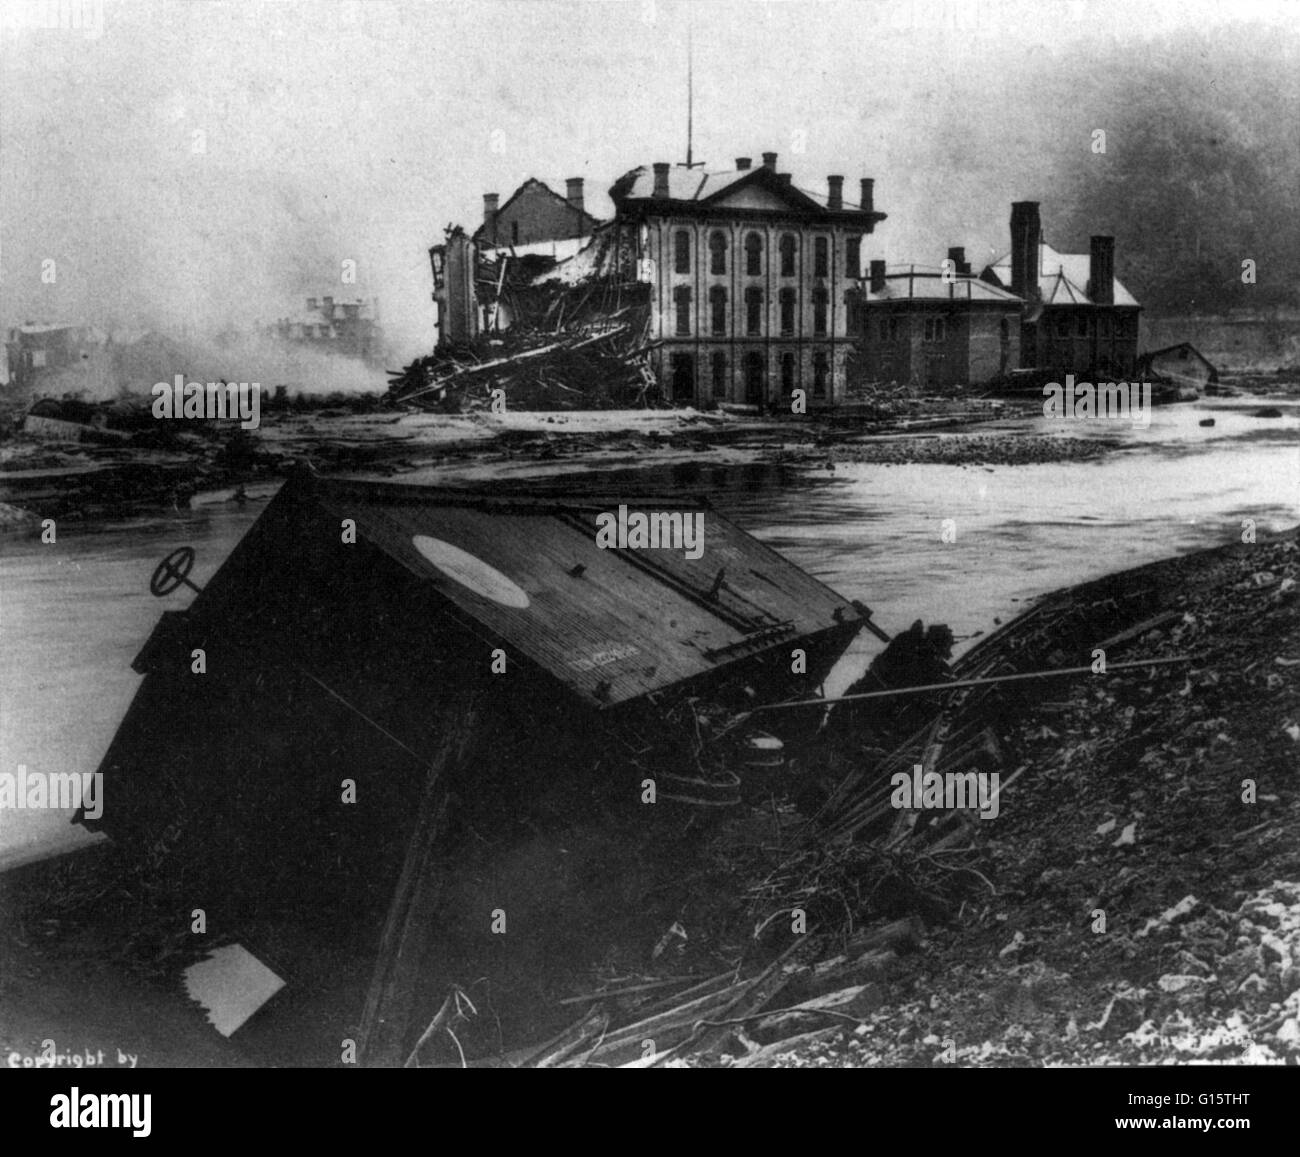 The Johnstown Flood (or Great Flood of 1889 as it became known locally) occurred on May 31, 1889. It was the result - Stock Image